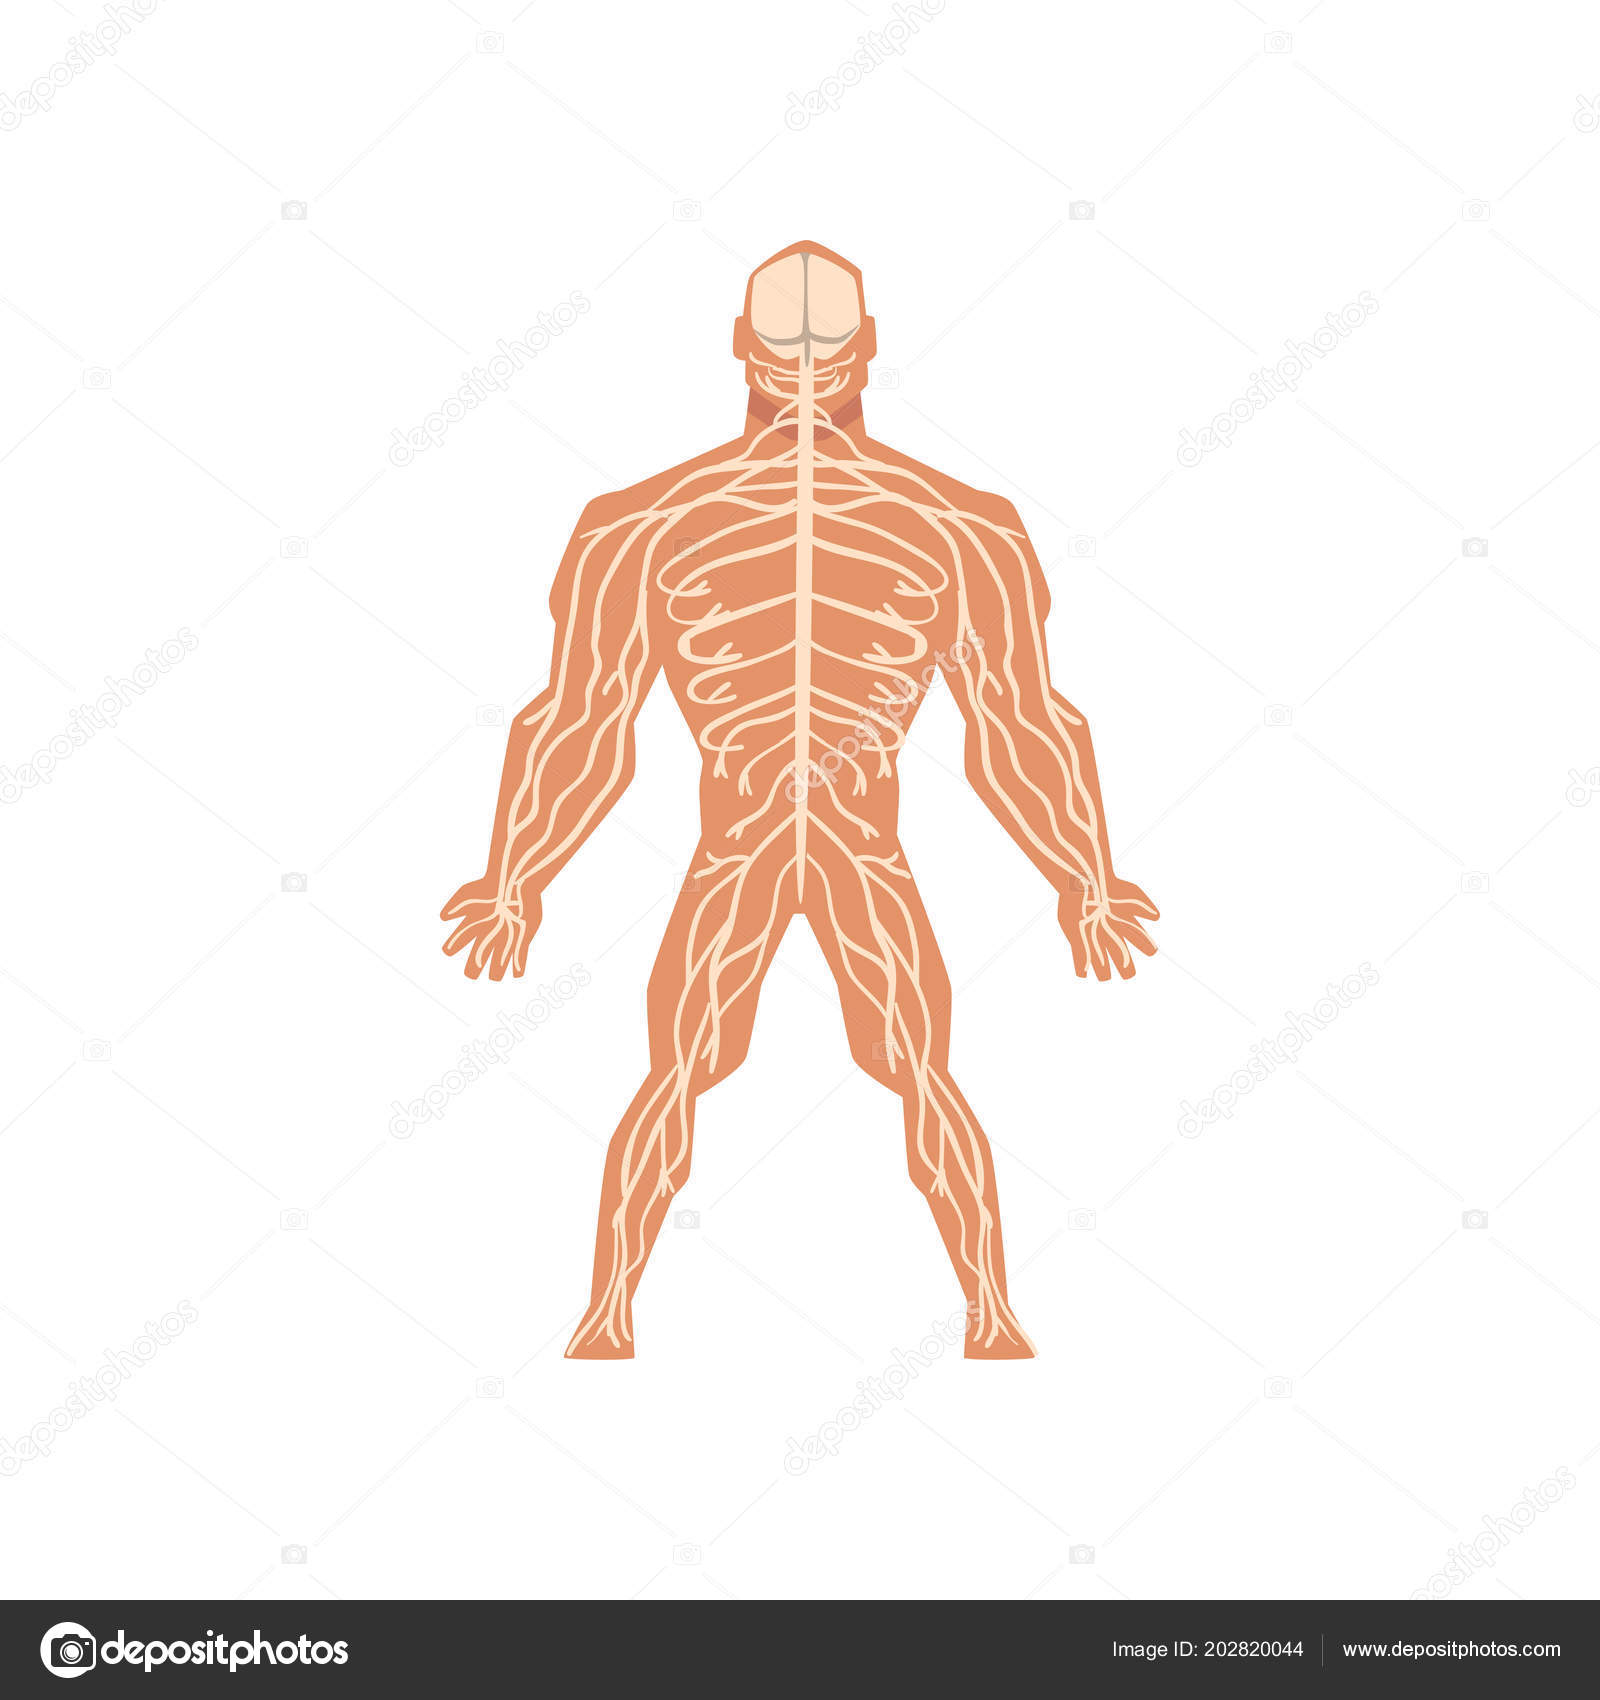 Human Biological Nervous System Anatomy Of Human Body Vector